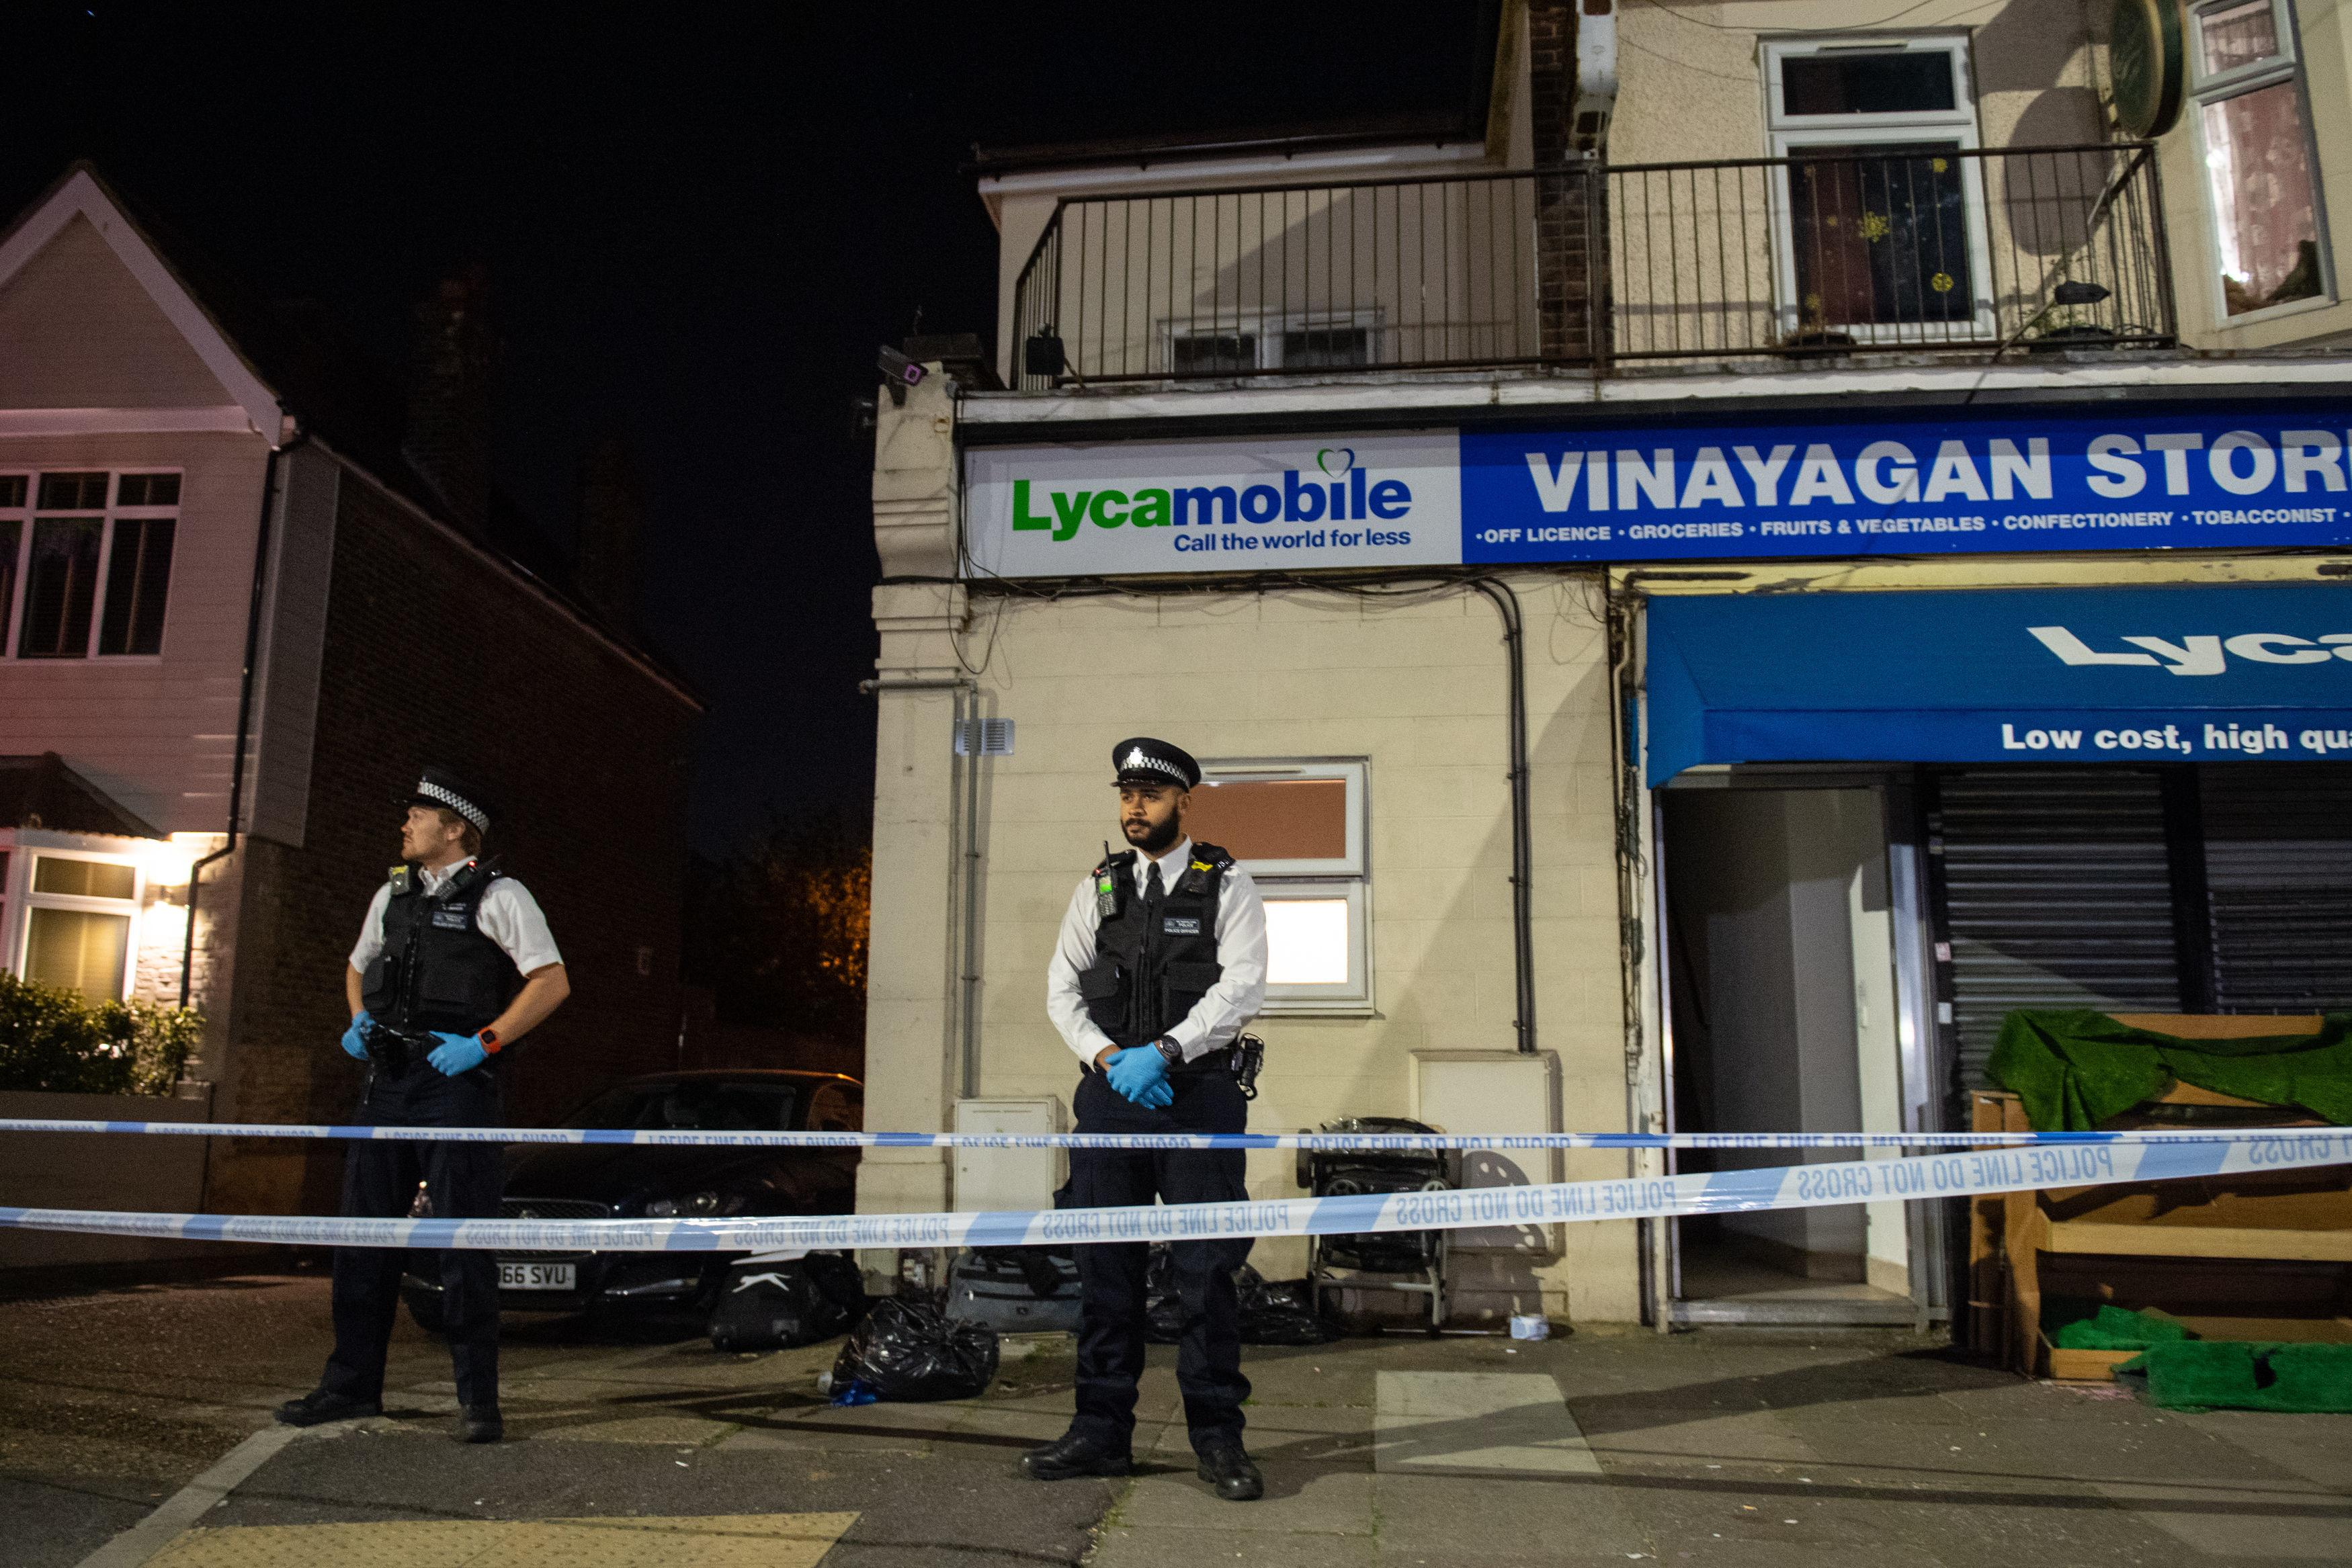 Police attend the scene in Aldborough Road North, Ilford, east London where a baby girl and a boy aged three have been stabbed to death while a 40-year-old man was found injured and was taken to hospital. PA Photo. Picture date: Sunday April 26, 2020. Scotland Yard said the man and the two children were known to each other, and police were not looking for anyone else in connection with the incident. See PA story POLICE Ilford. Photo credit should read: Dominic Lipinski/PA Wire